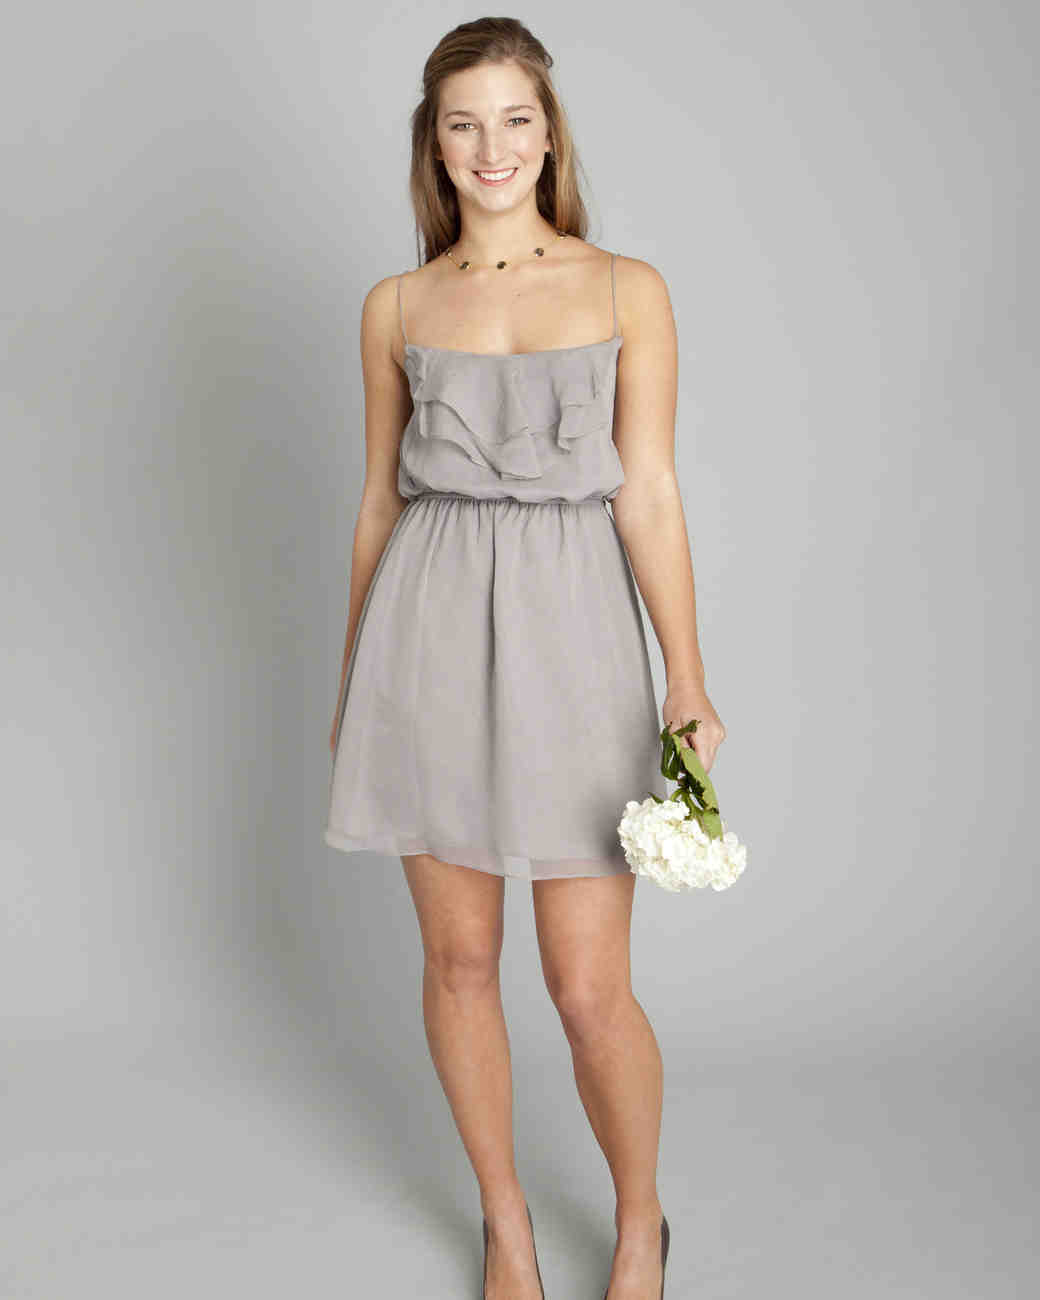 Bridesmaid dresses for beach weddings martha stewart weddings coren moore ombrellifo Gallery